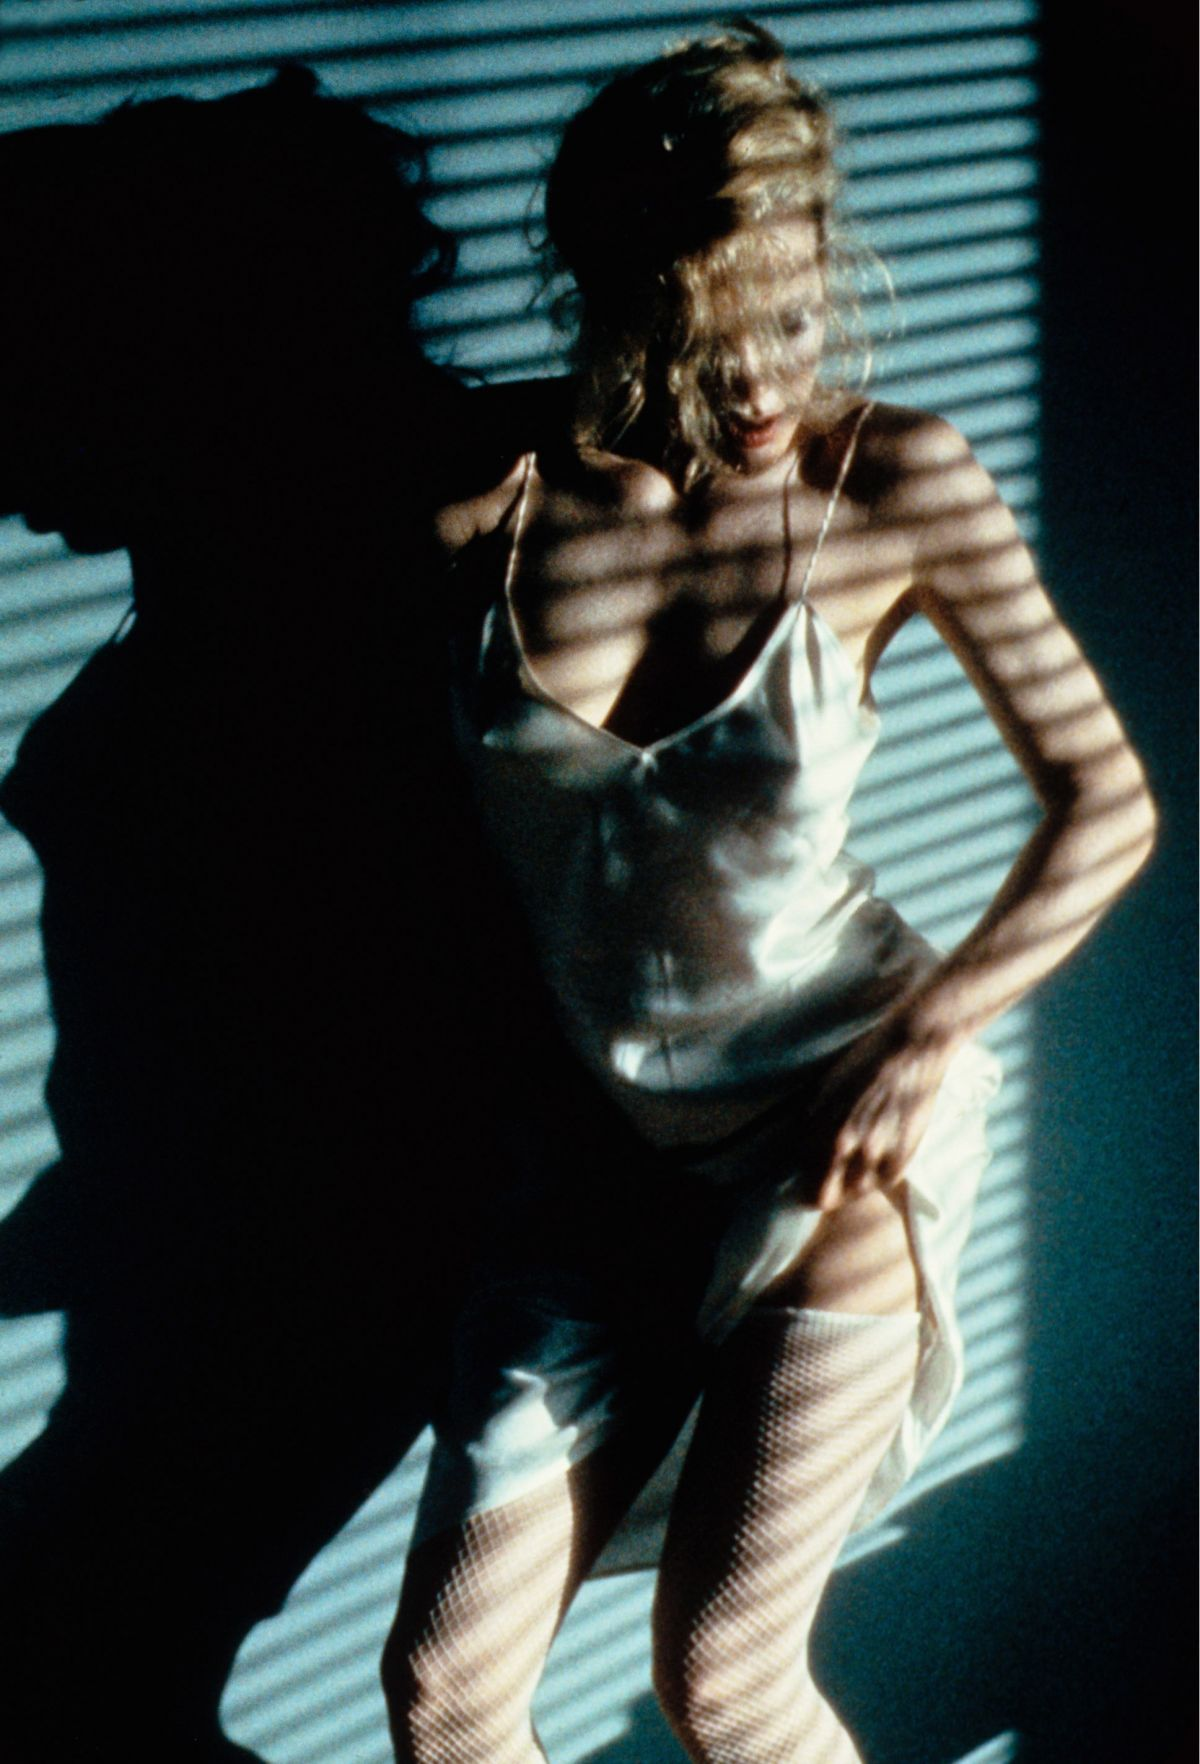 Best From The Past KIM BASINGER For 9 1 2 Weeks Promos 1986